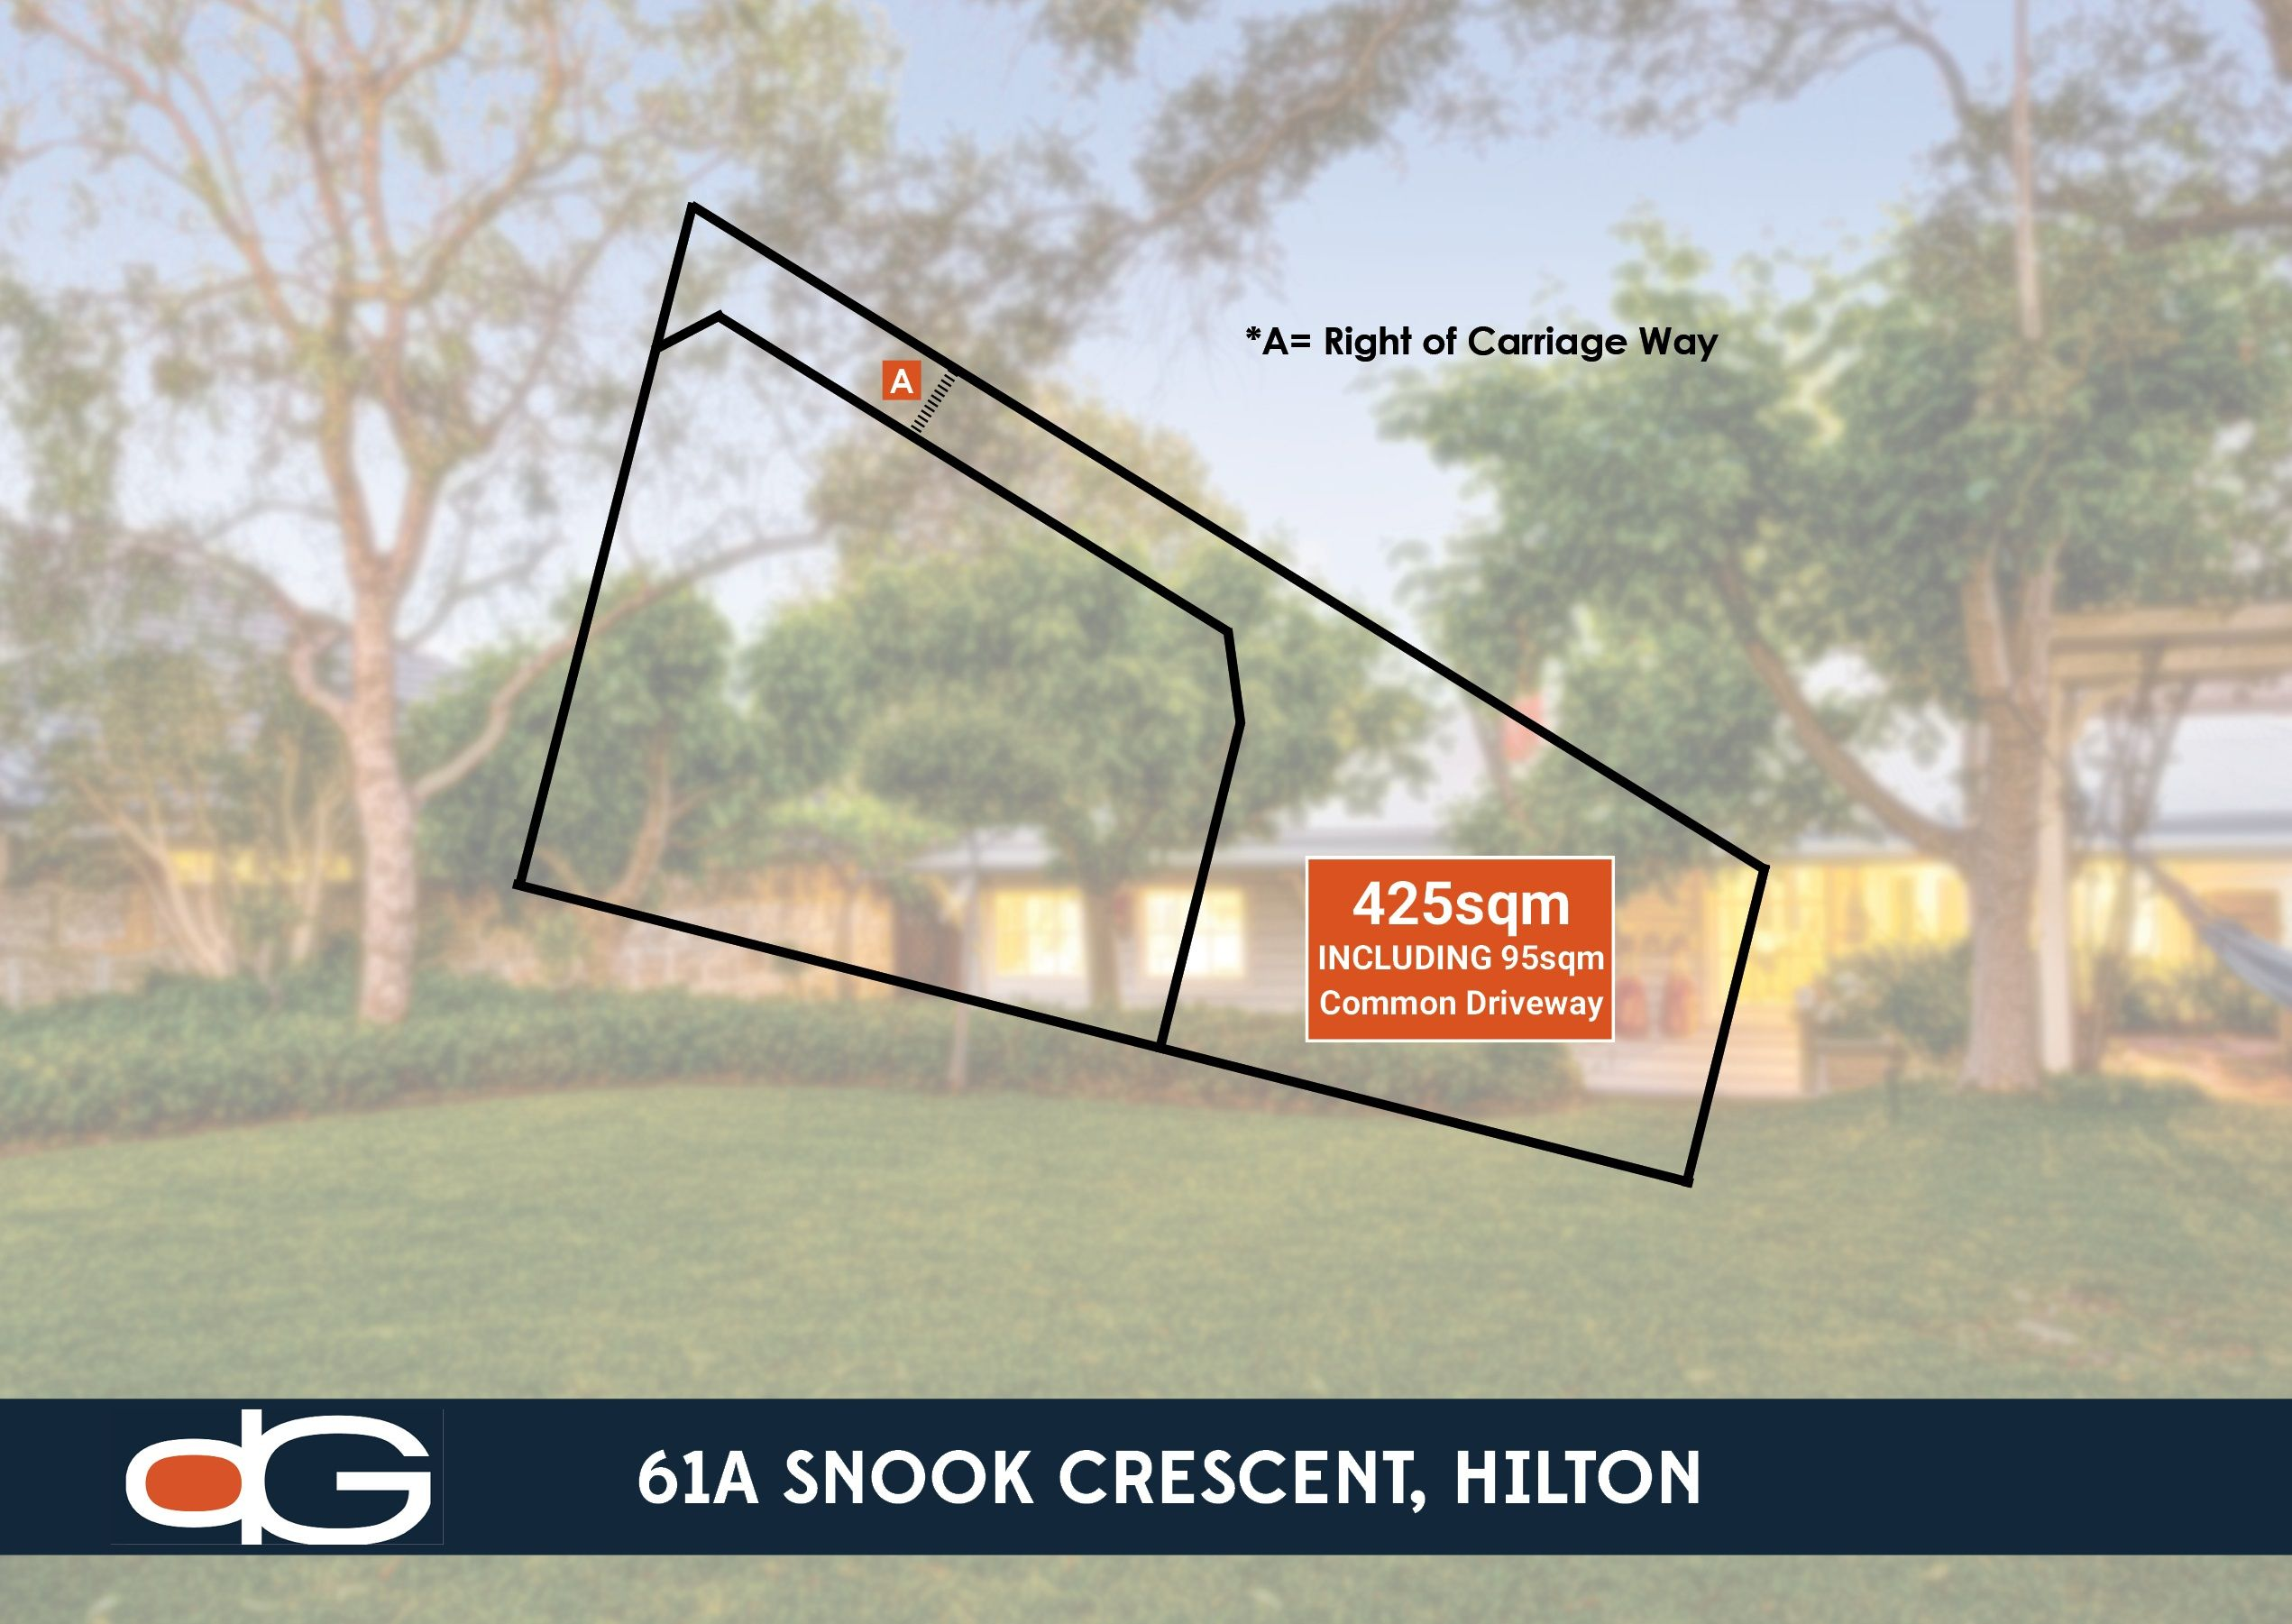 61A Snook Crescent, Hilton